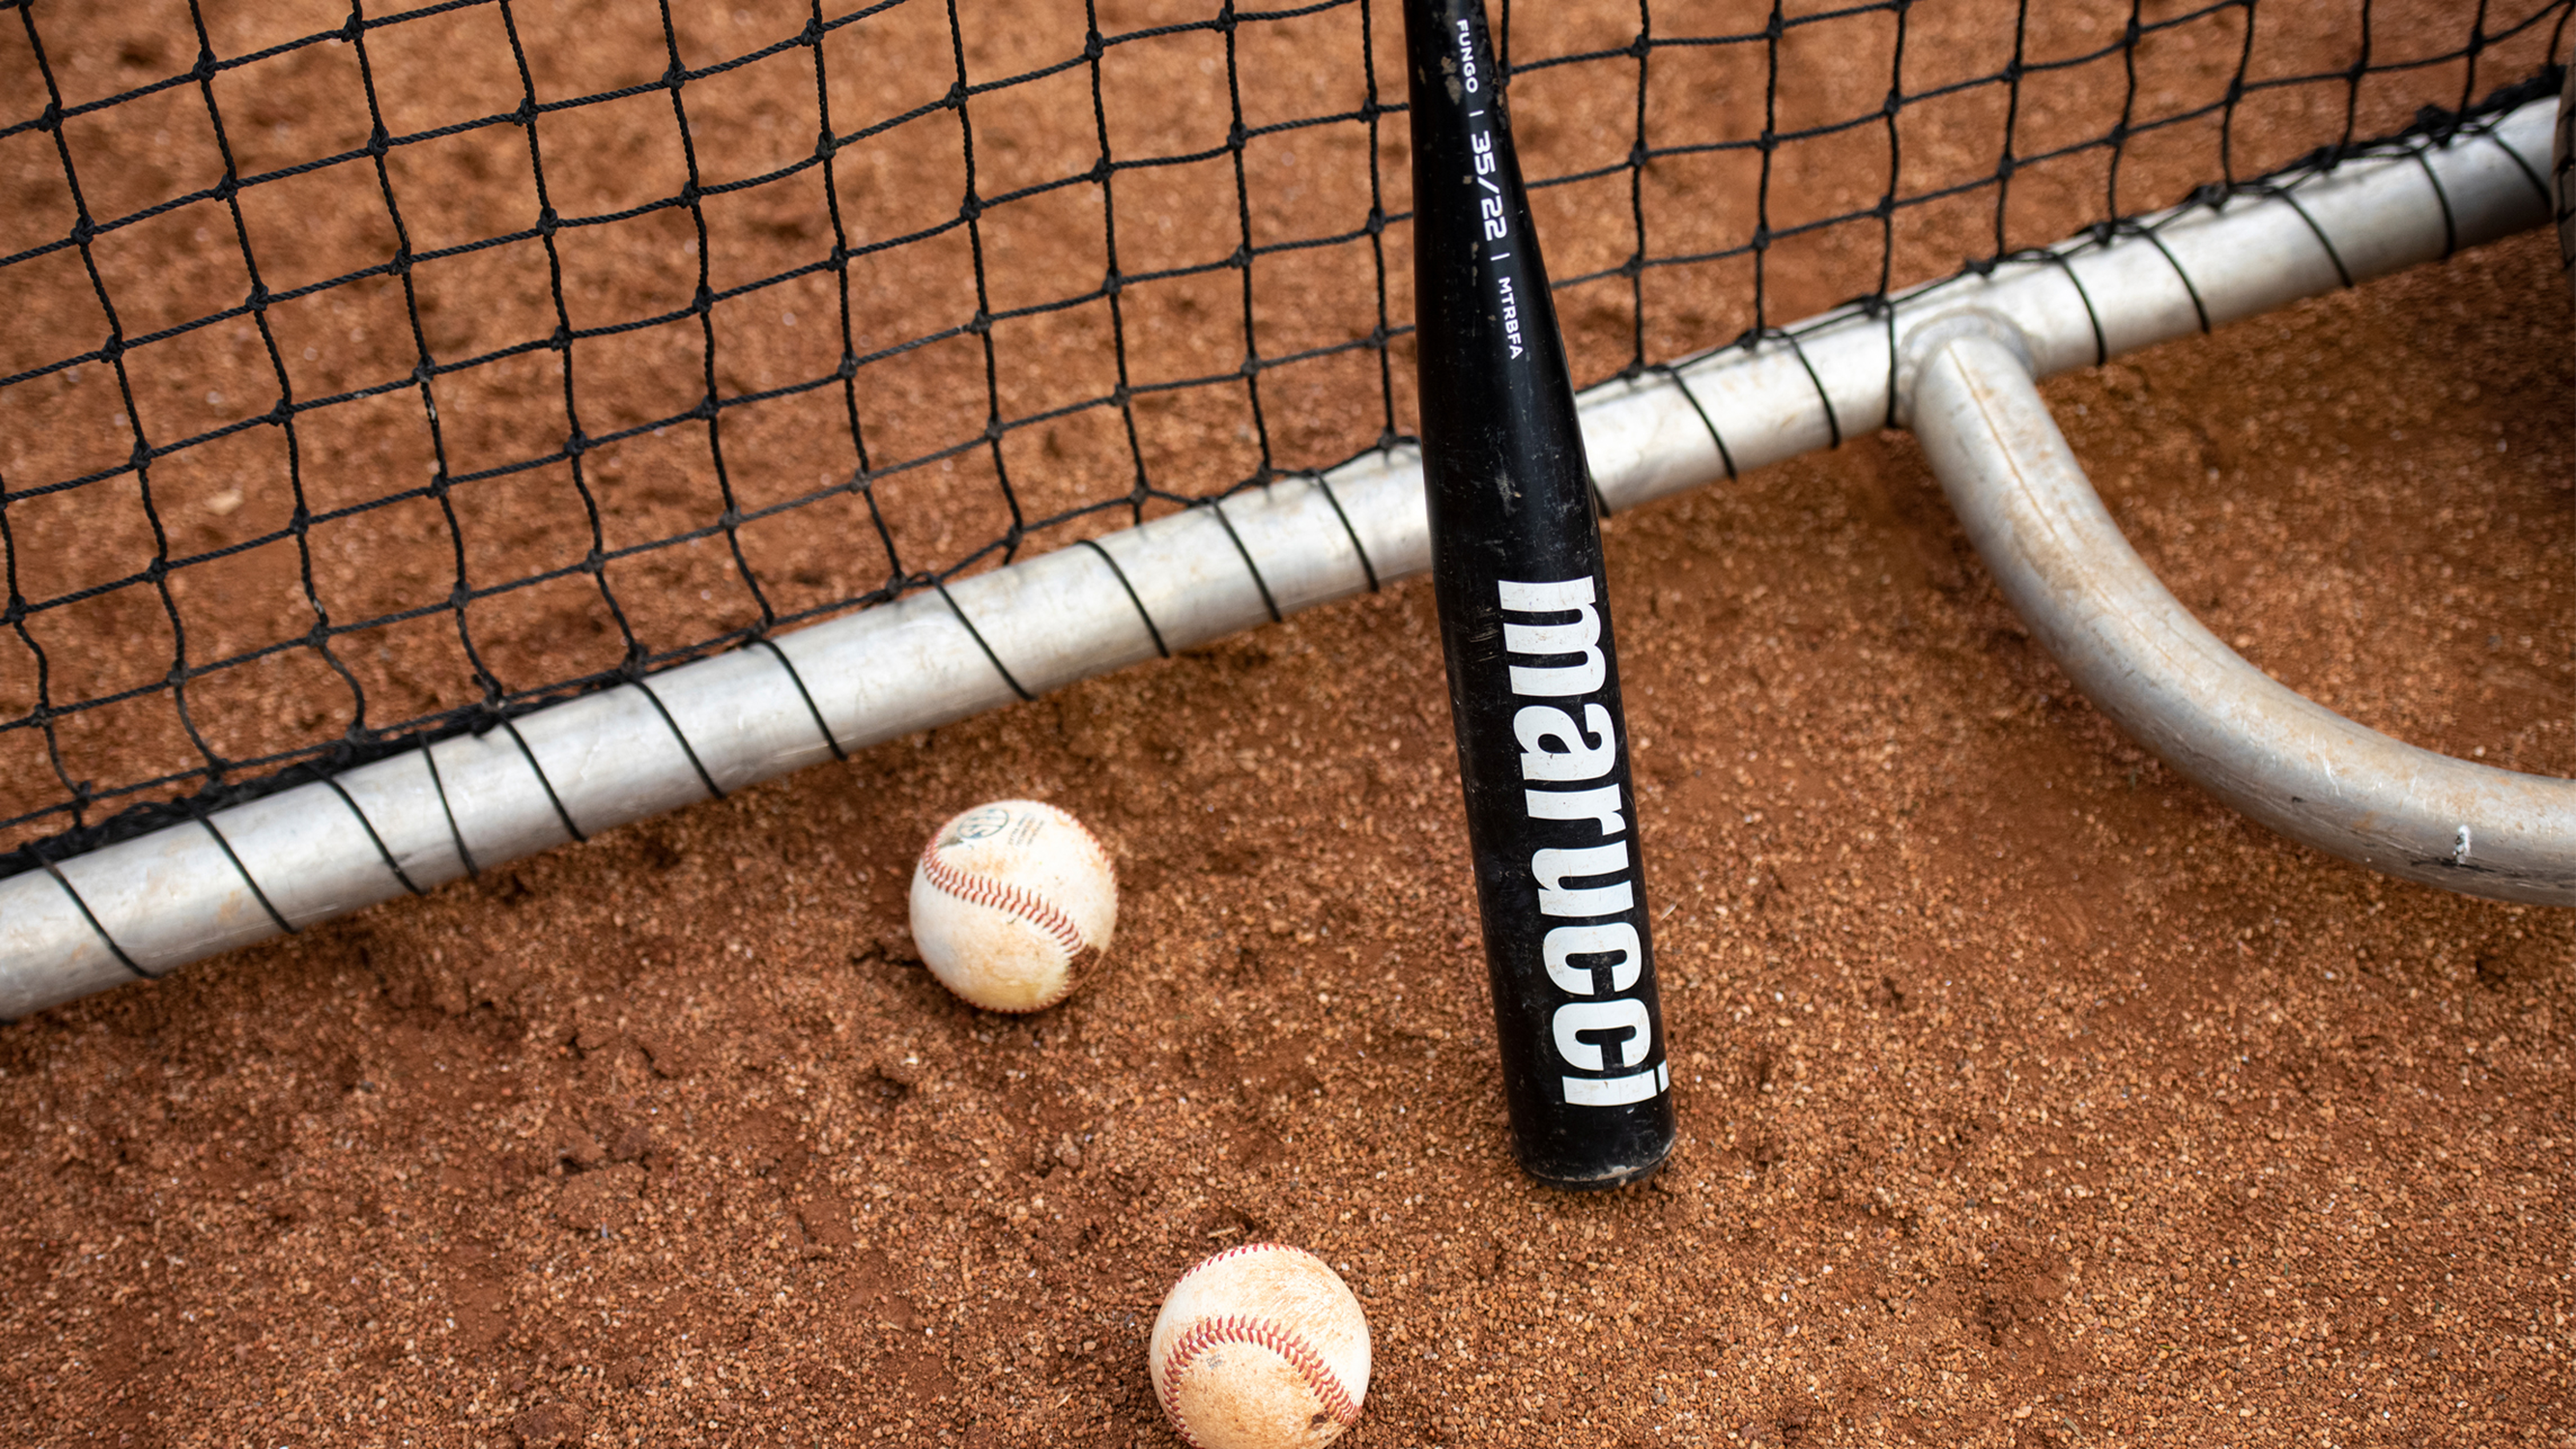 Why You Should Use A Fungo Bat